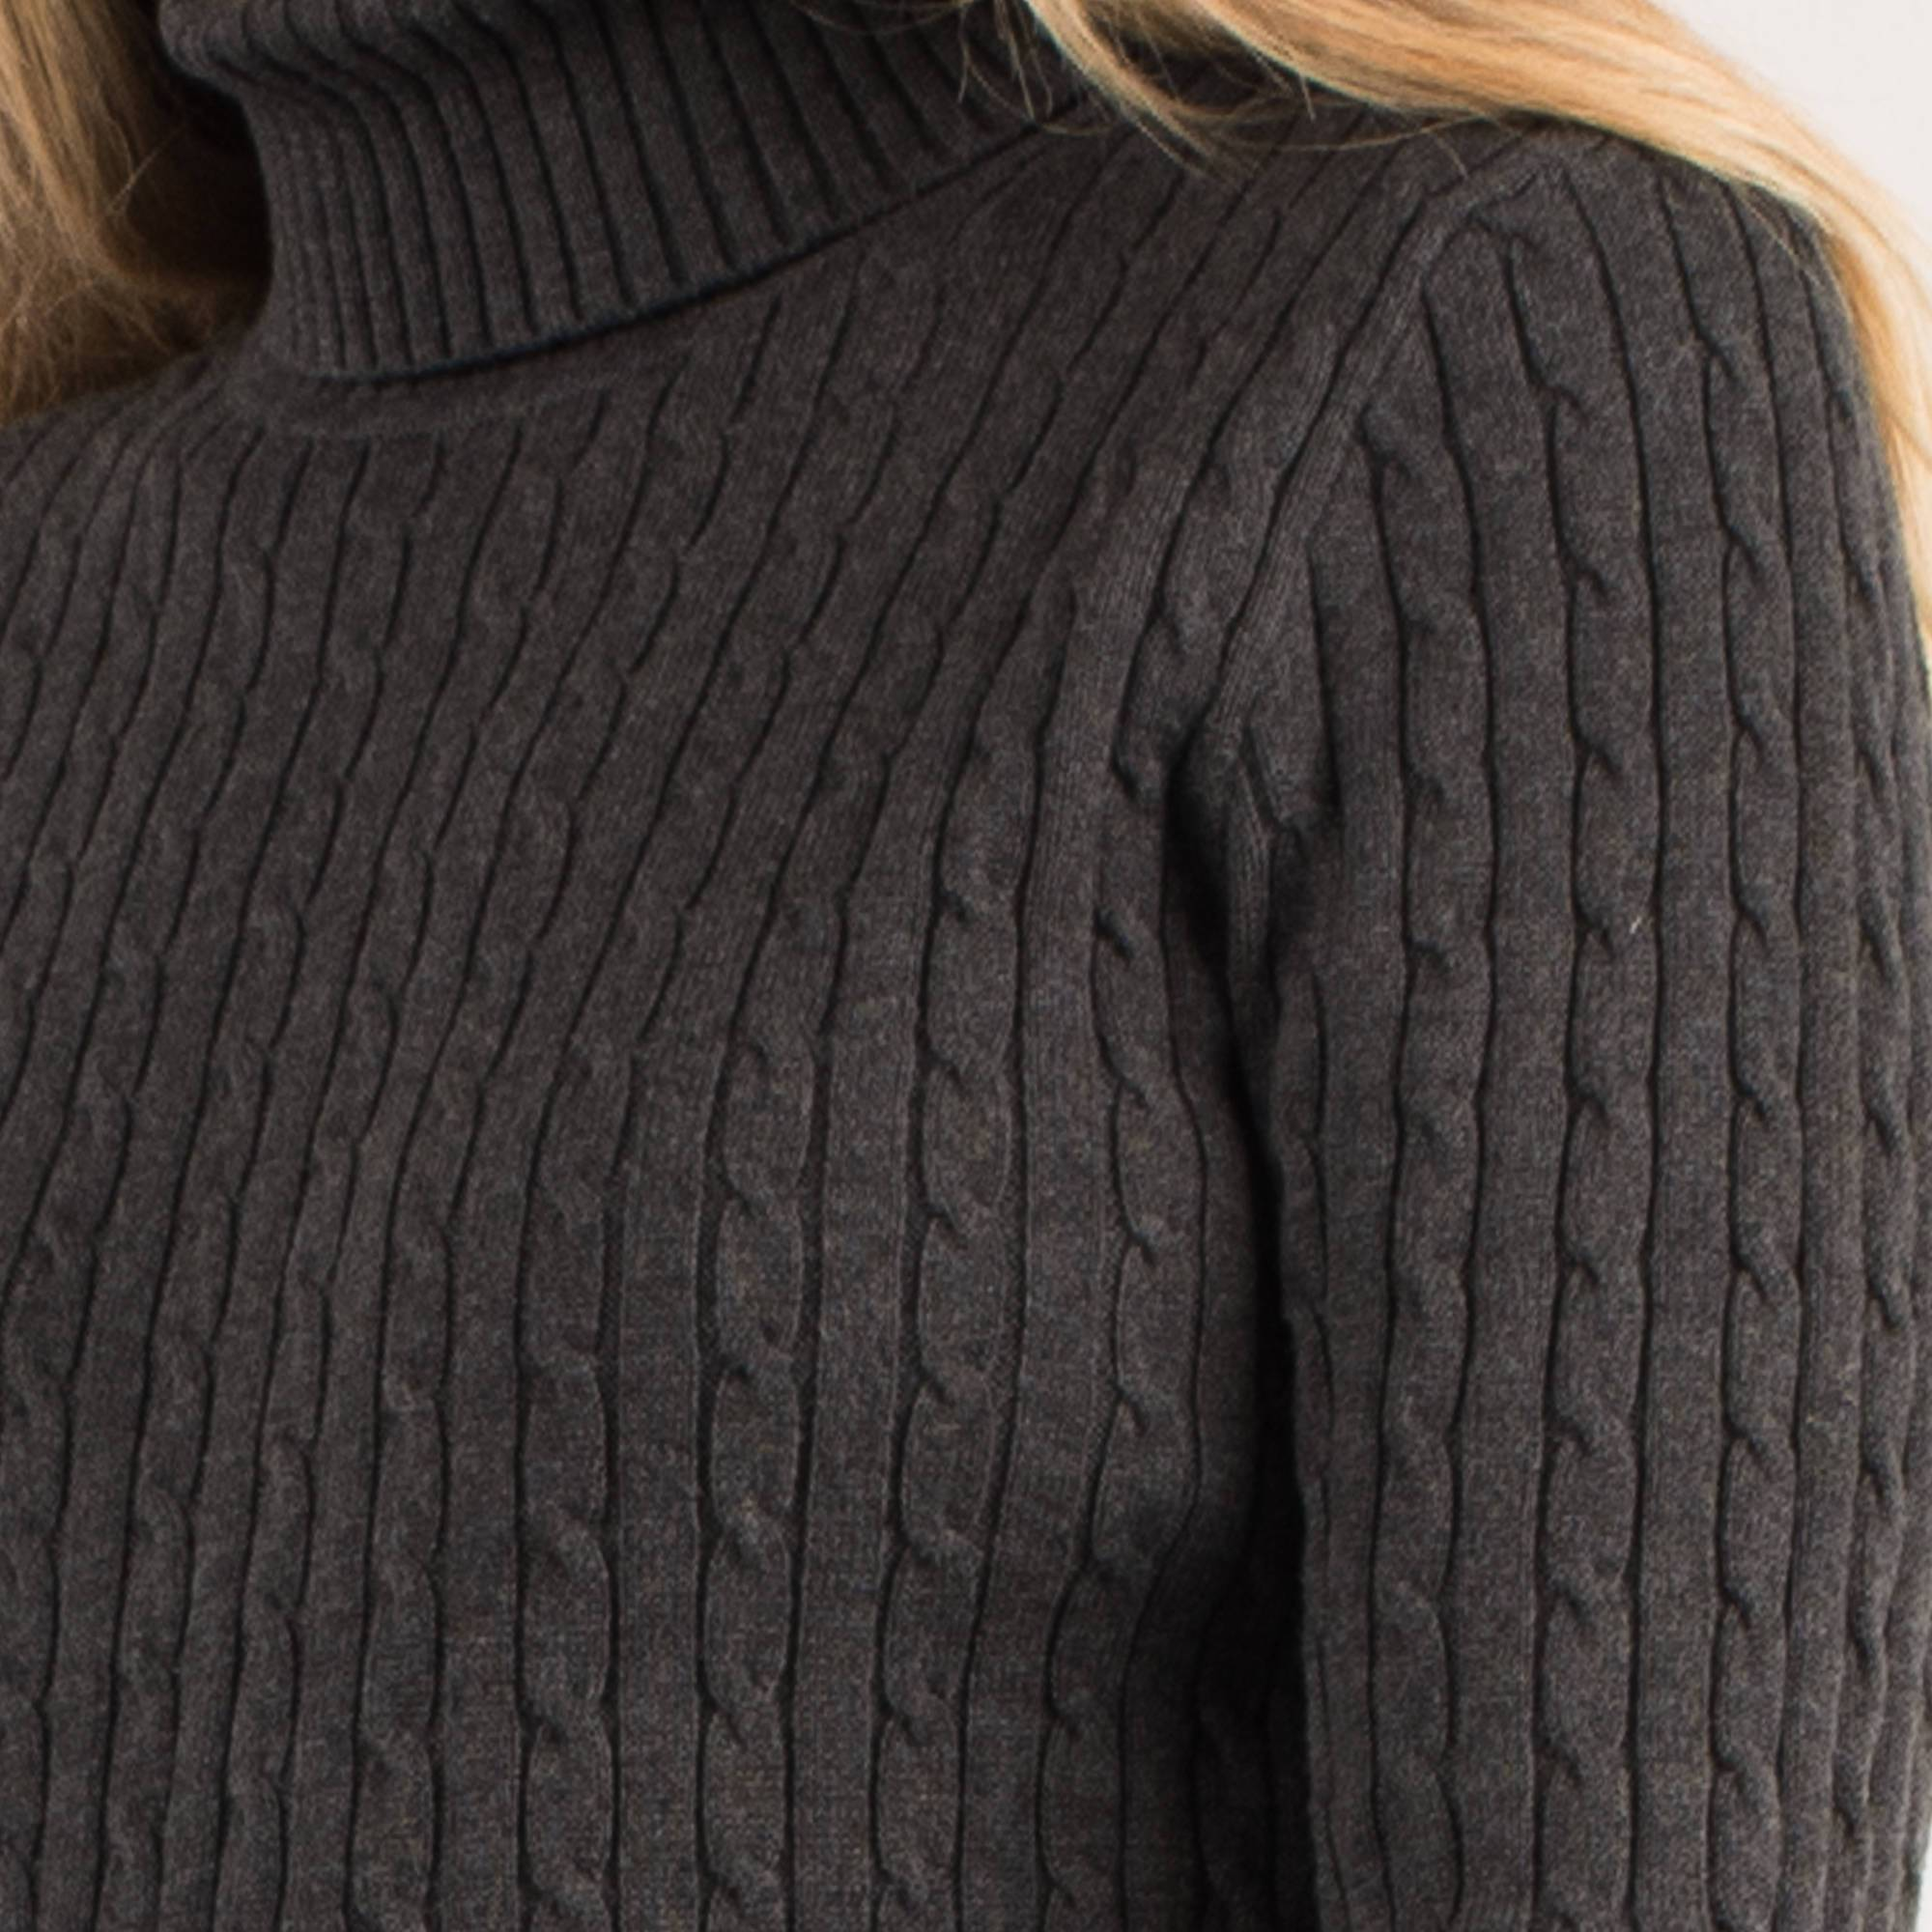 Vintage Grey Cable Knit Turtleneck Sweater / S - Closed Caption